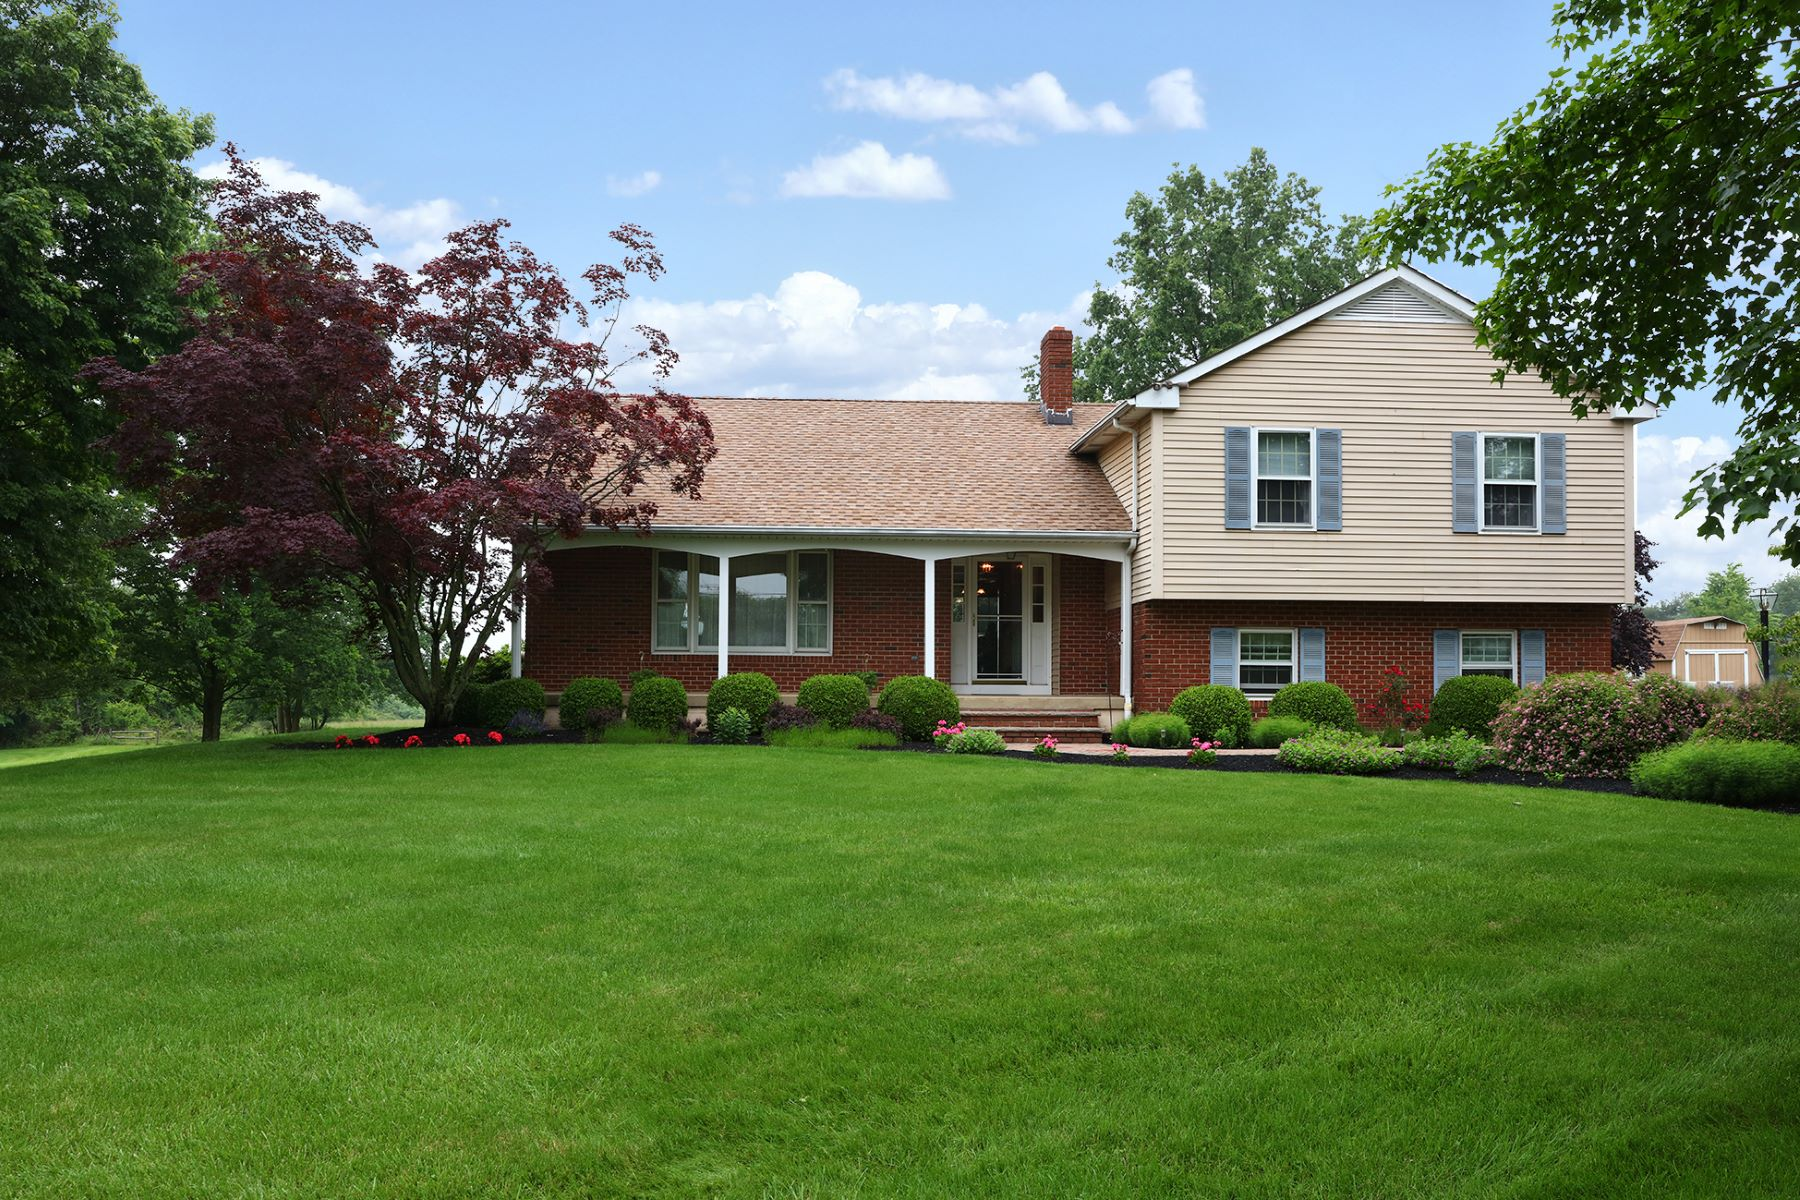 Single Family Home for Sale at A Classic In An Idyllic Setting - East Amwell Township 56 Saddle Shop Road Ringoes, New Jersey 08551 United States